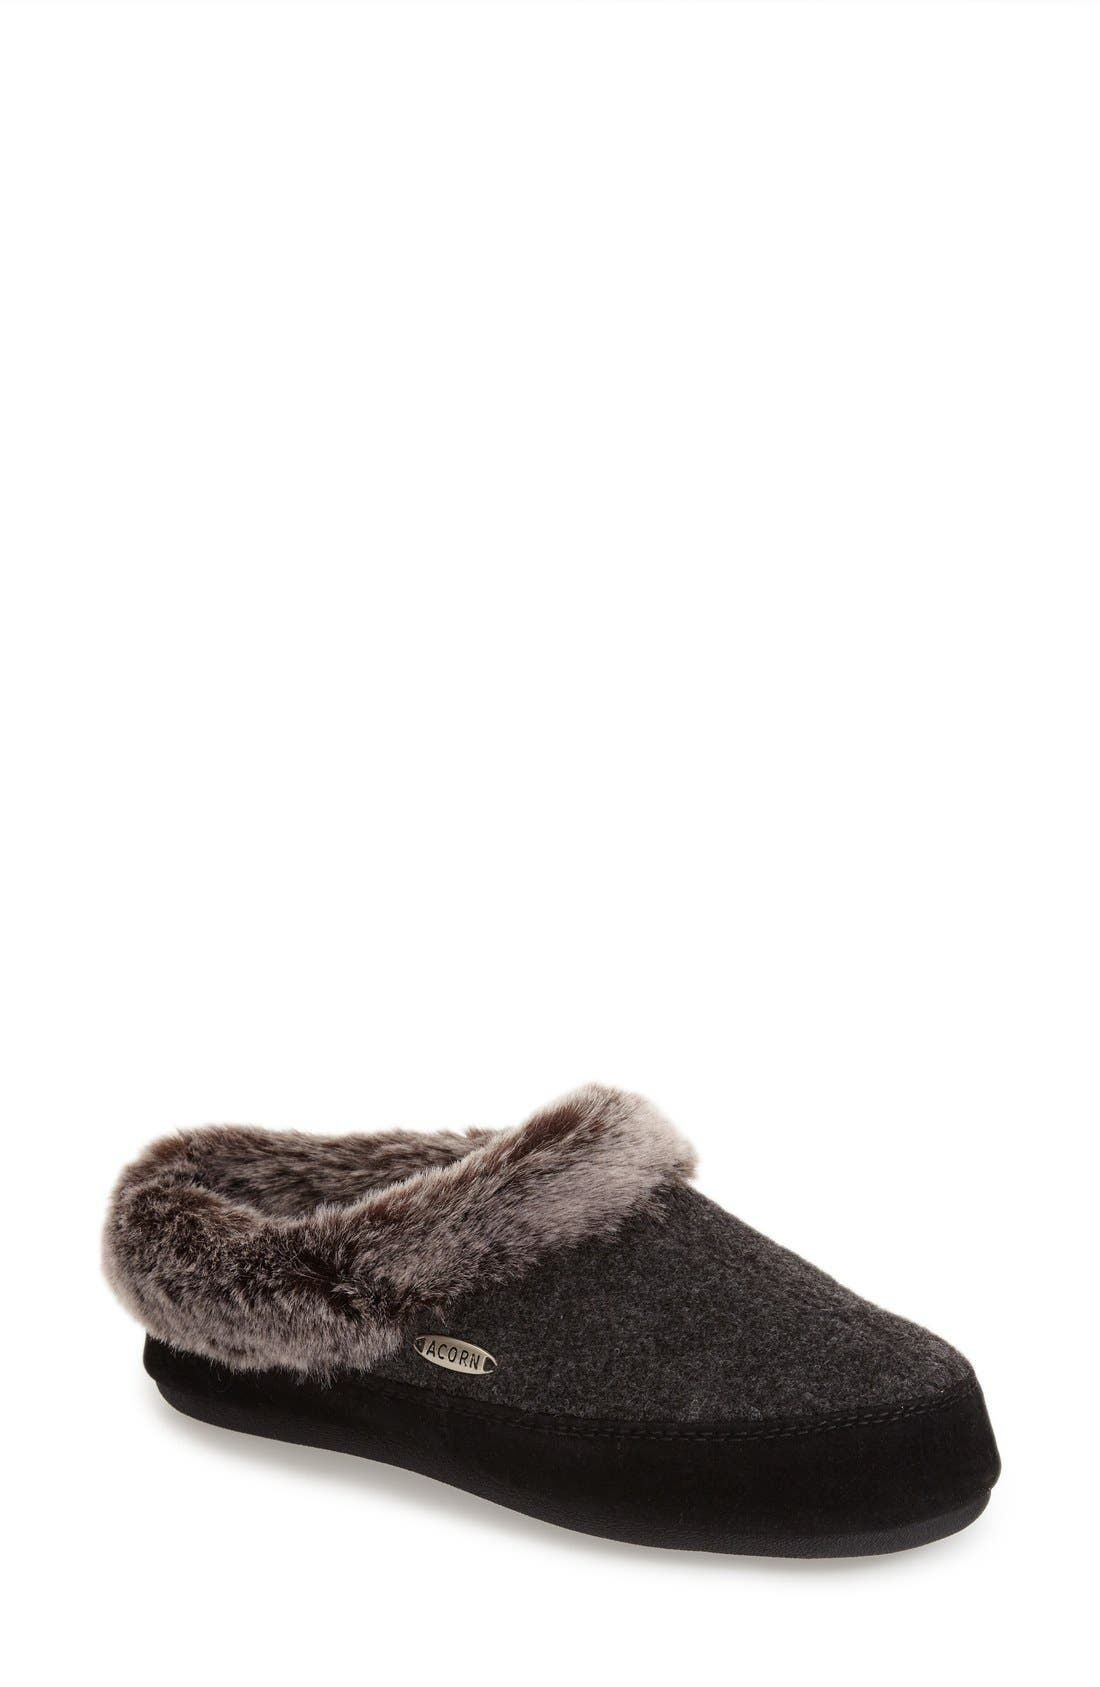 'Cloud Chilla Scuff' Slipper,                         Main,                         color,